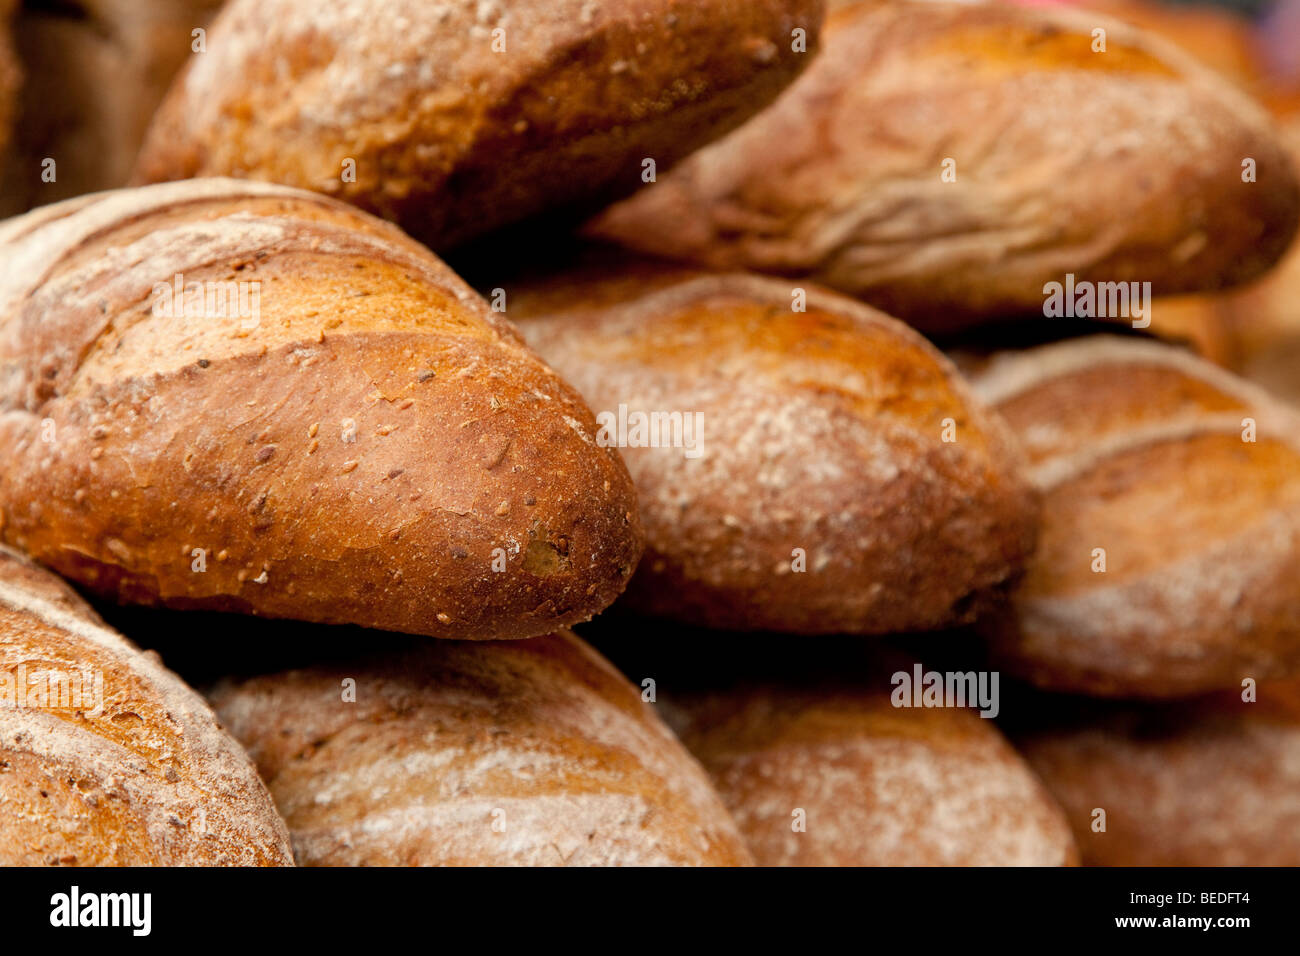 Large bloomer loaf - Stock Image